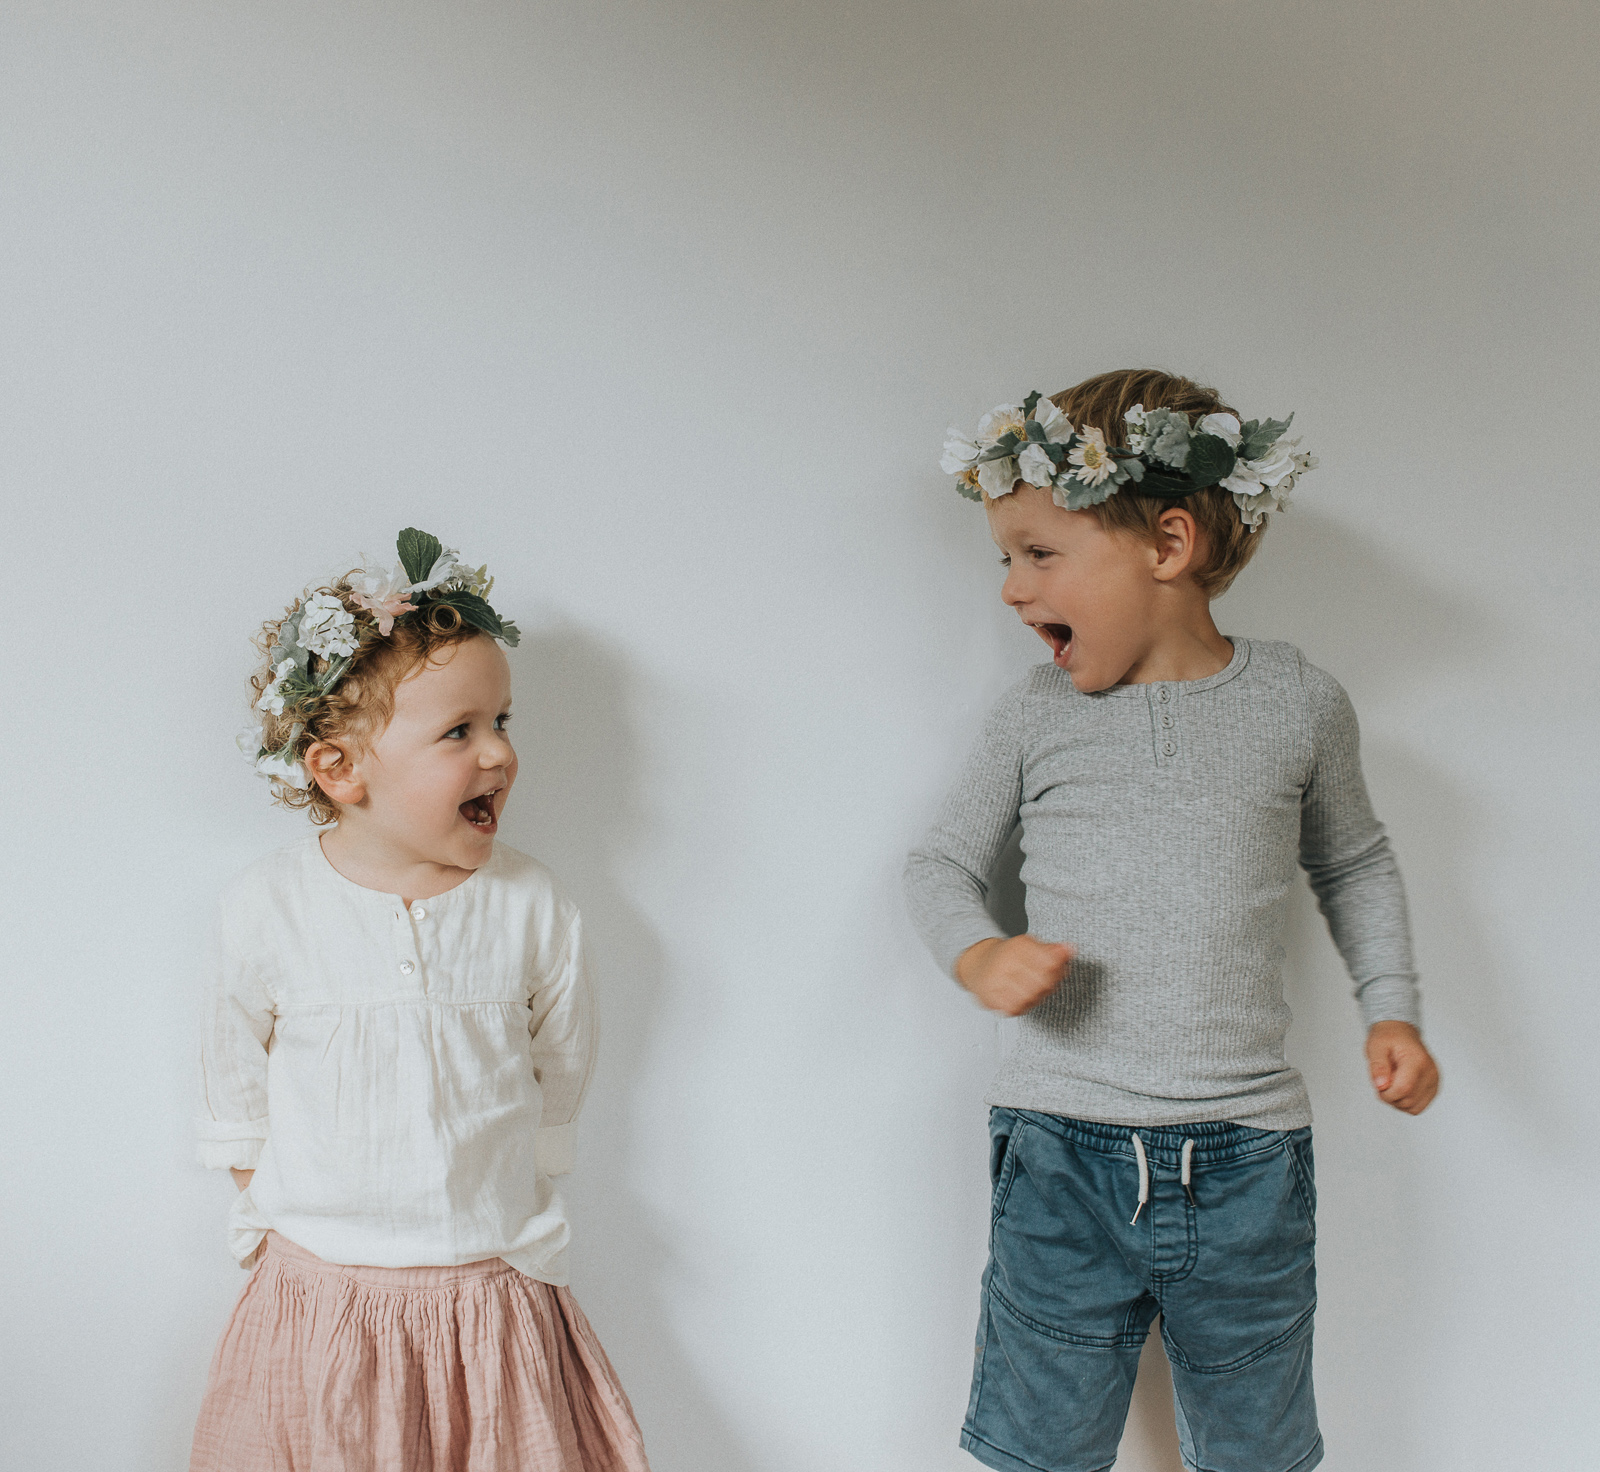 DIY Flower Crowns for Dress Ups by Clever Poppy 3.jpg